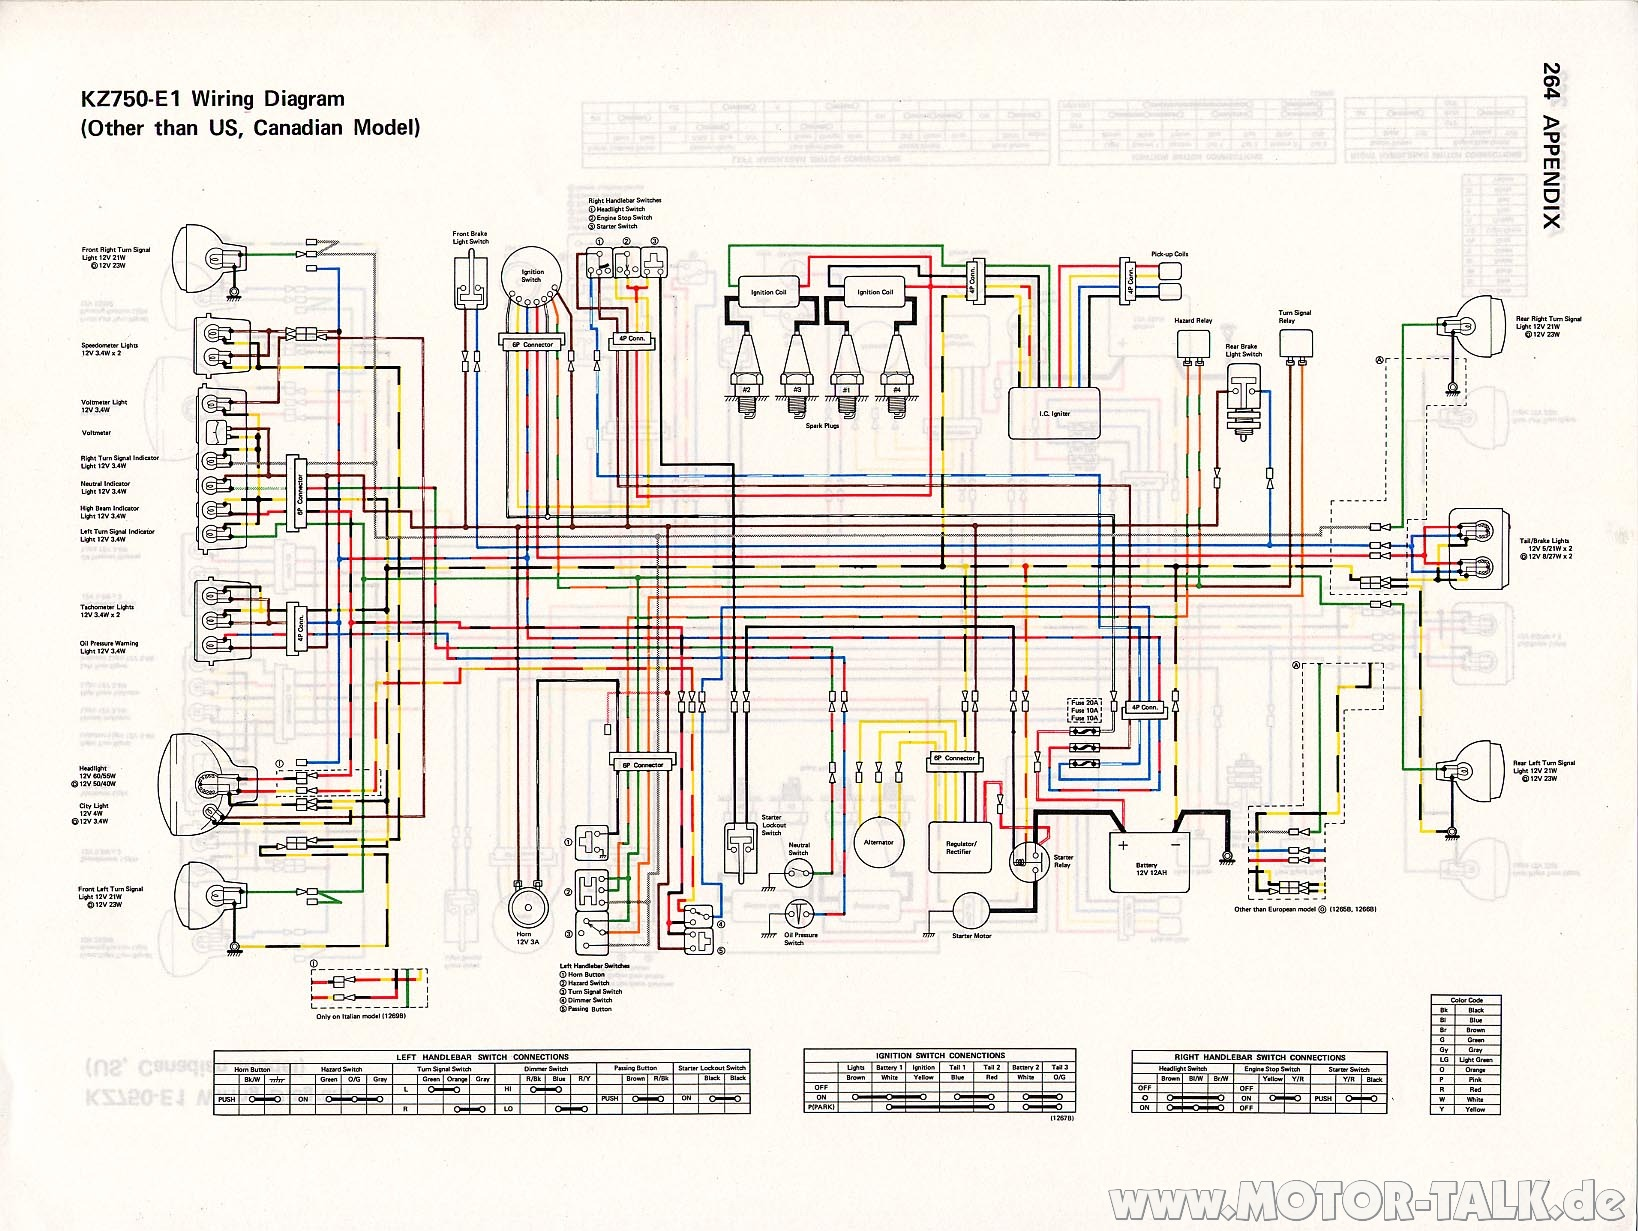 Xs650 Pma Electronic Ignition Wiring Diagram - Wiring ...